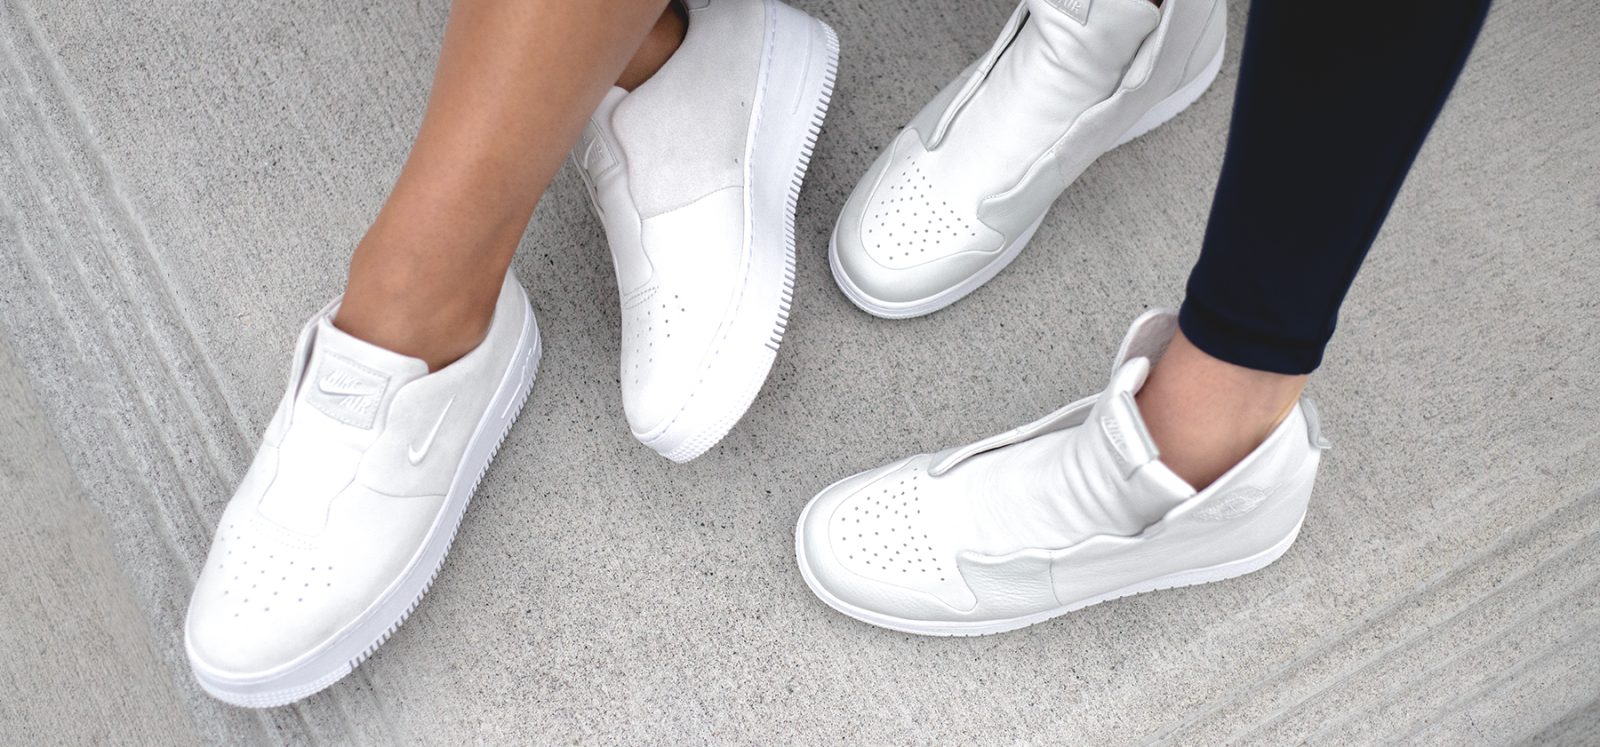 Nike The 1 Reimagined SAGE Air Force Jordan On Feet Closer Look Women Exclusive Female Designer Design Collective Minimalist White